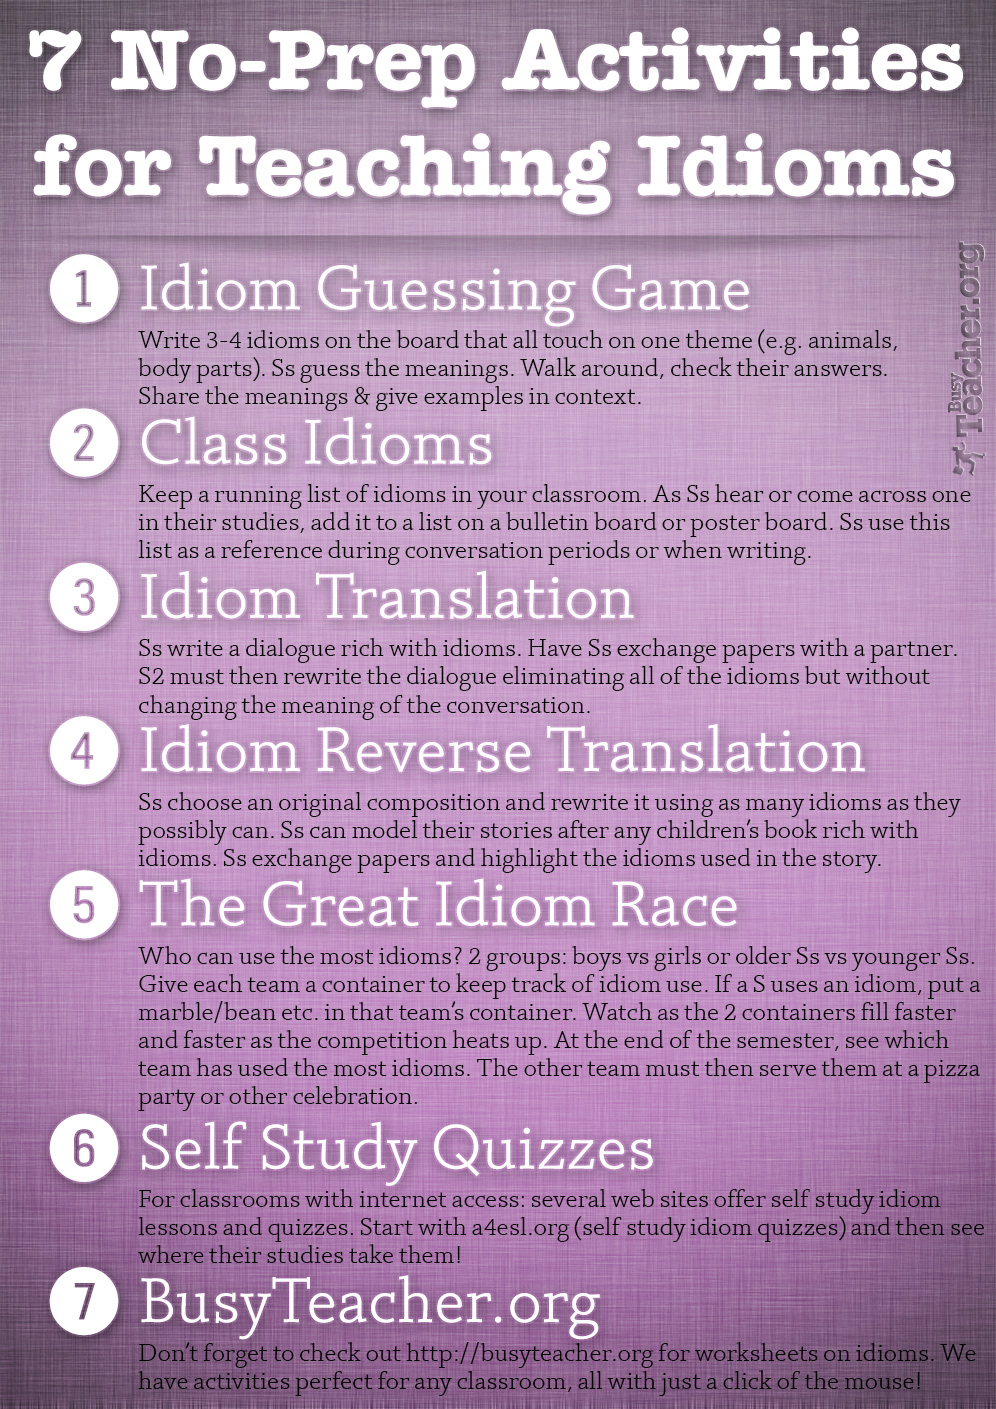 7 No-Prep Activities for Teaching Idioms: Poster